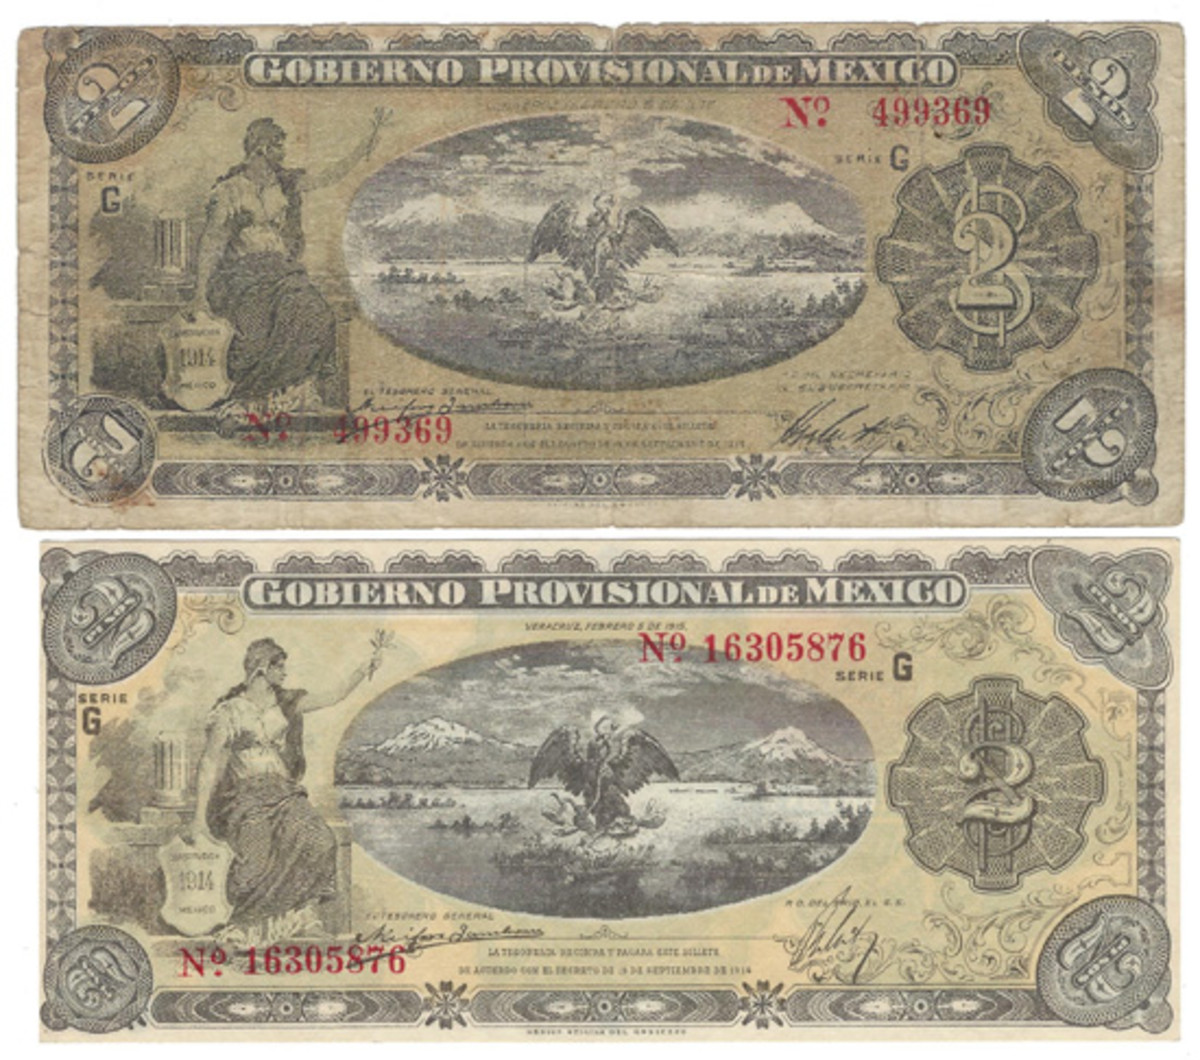 Here are two different printings of the Veracruz issue 2 pesos, both dated Feb. 5, 1915. With such major differences as these in the two printing plates, it's hard to think that they could be ignored by any serious collector. The respective imprints also differ.